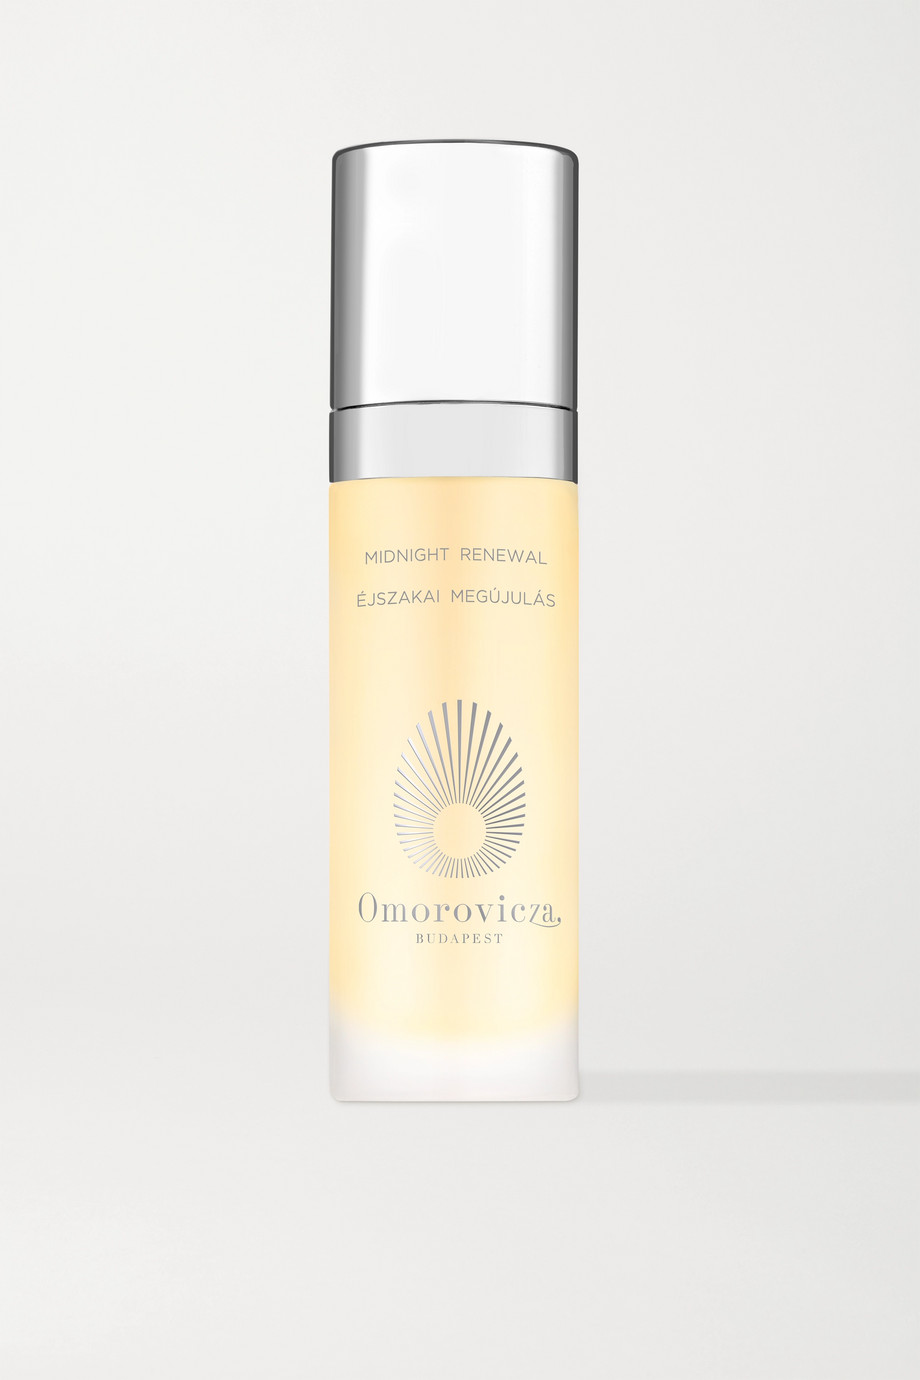 OMOROVICZA Midnight Renewal Serum, 30ml